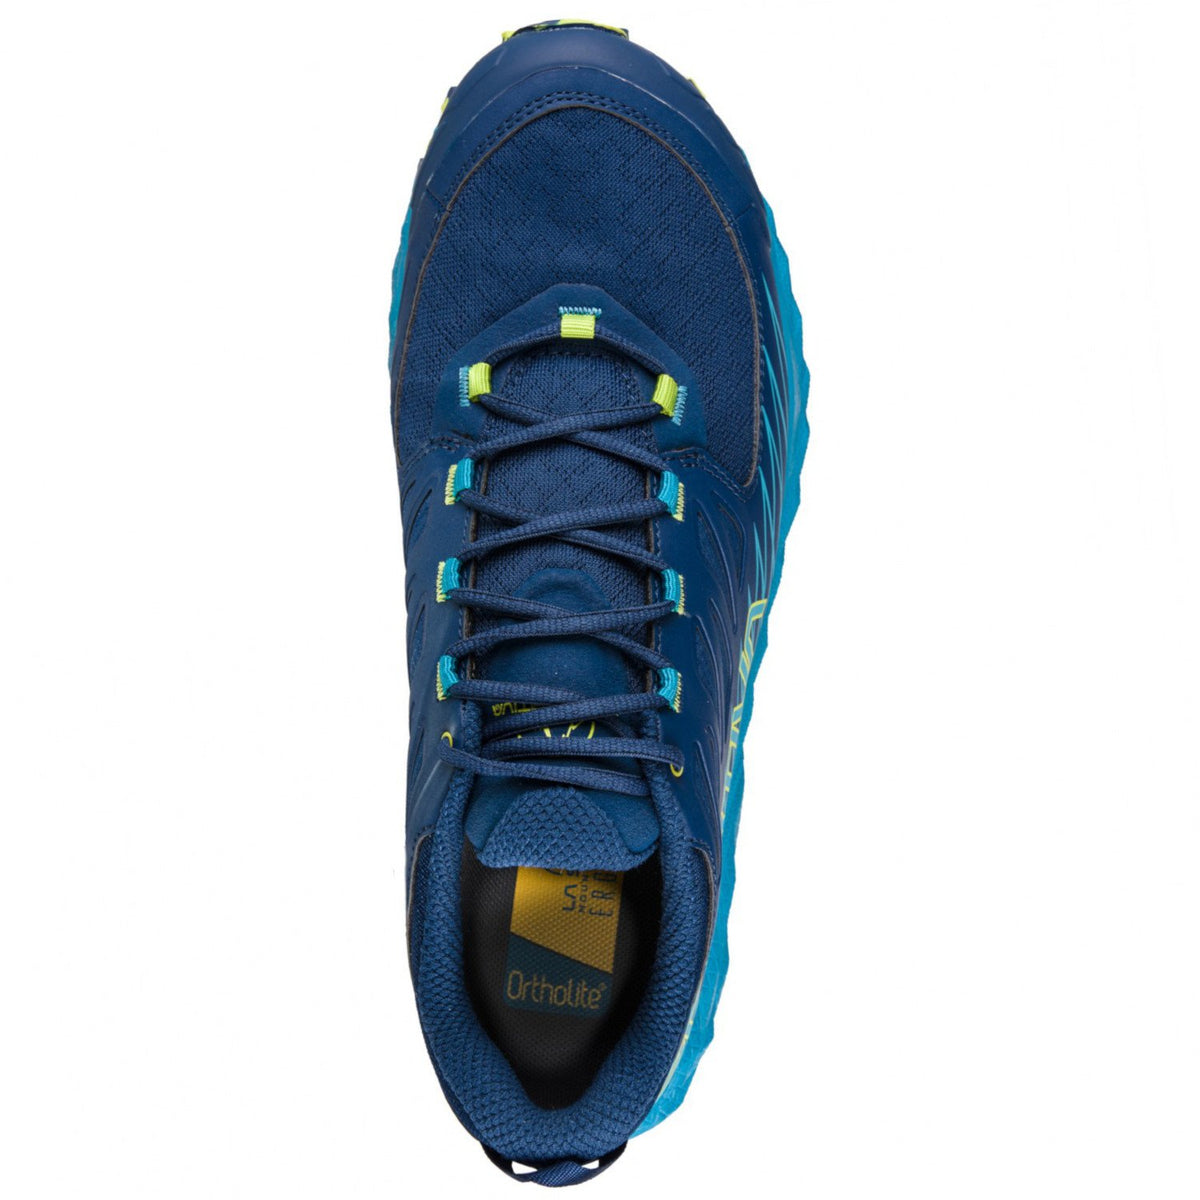 La Sportiva Lycan GTX running shoe, view as seen from above